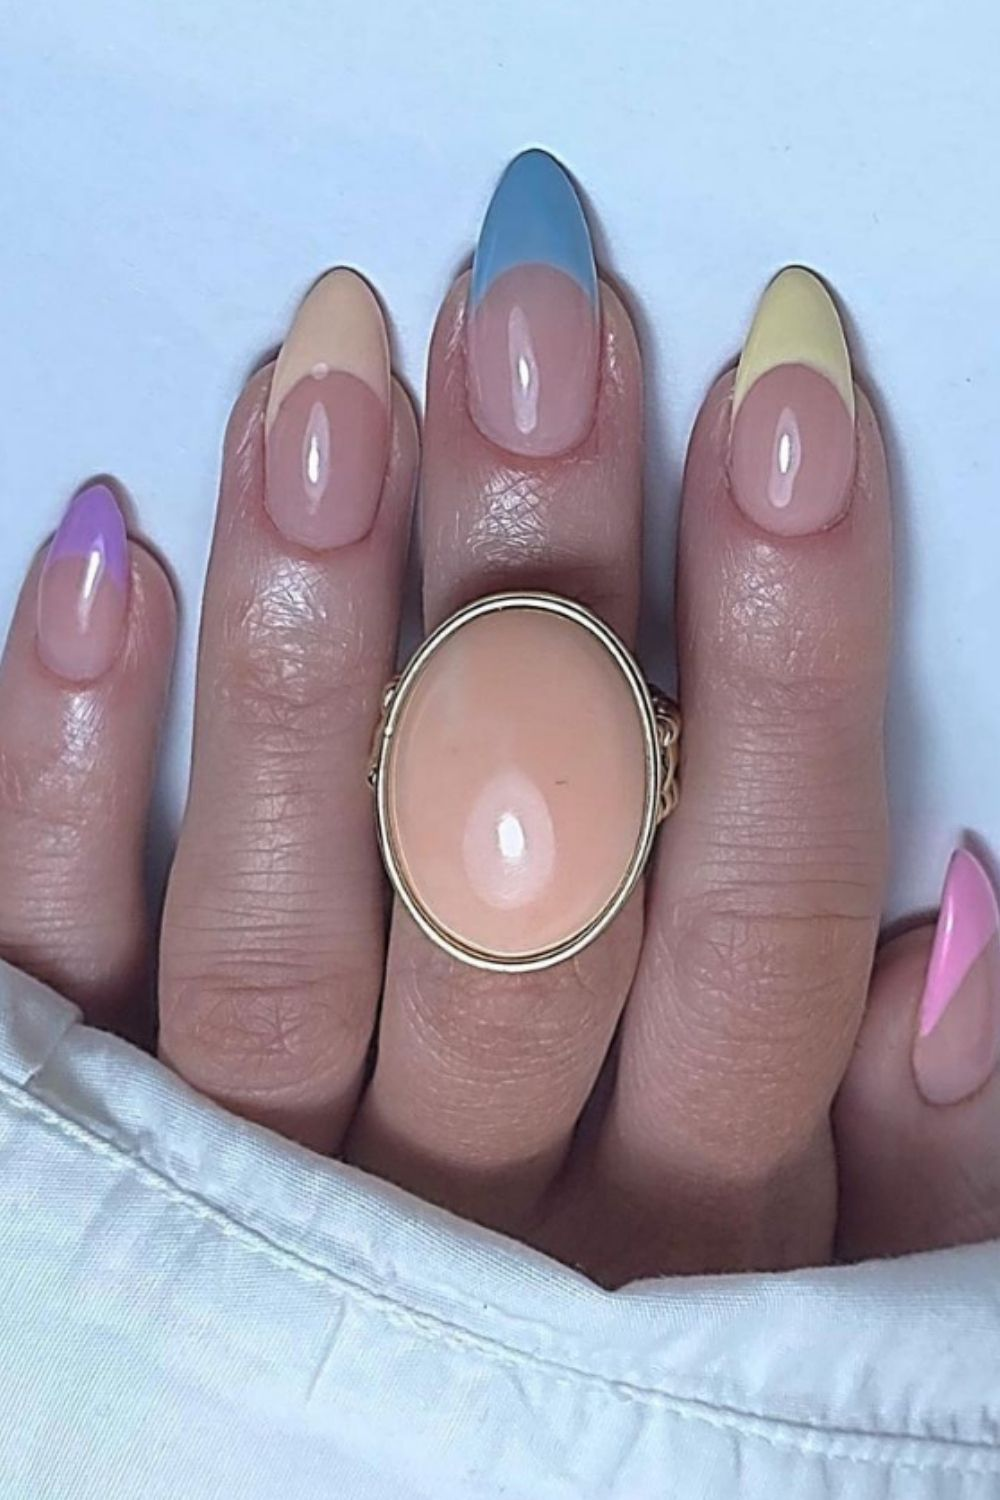 Pretty Summer Acrylic Nails To Try When You Go A Vacation!